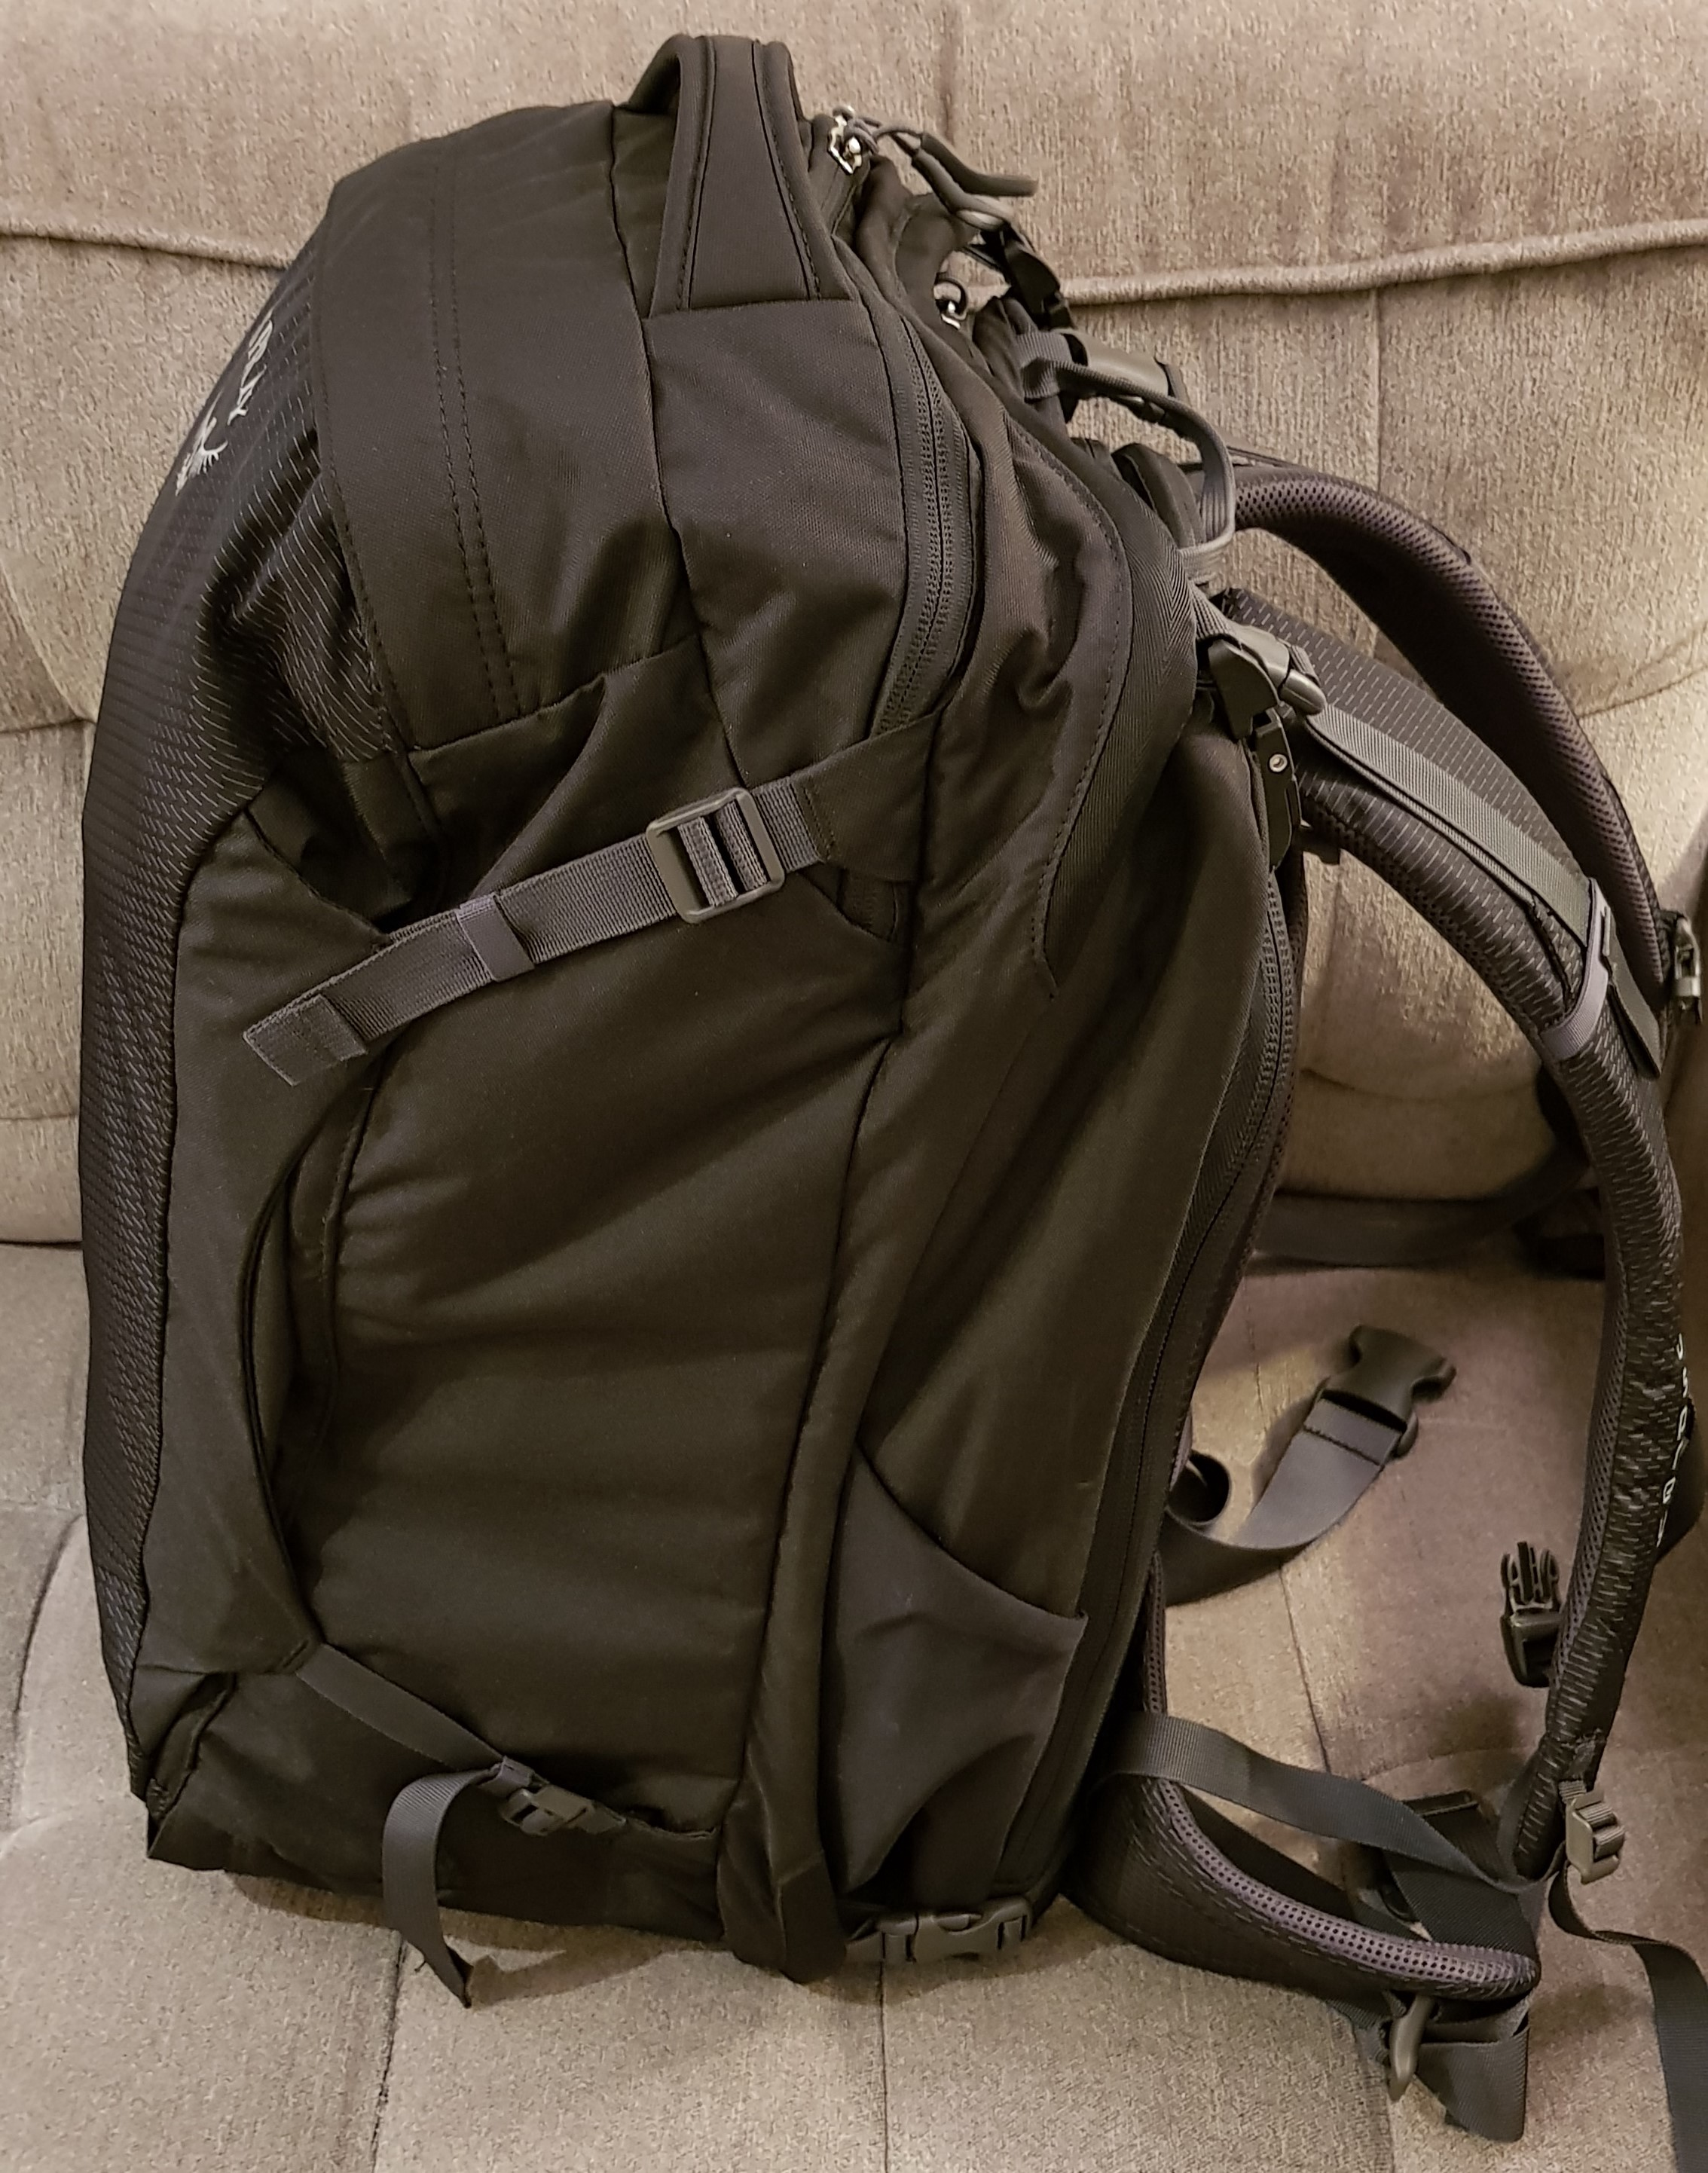 H/&L type Utility Straps Quick Release Backpack Compression luggage Straps